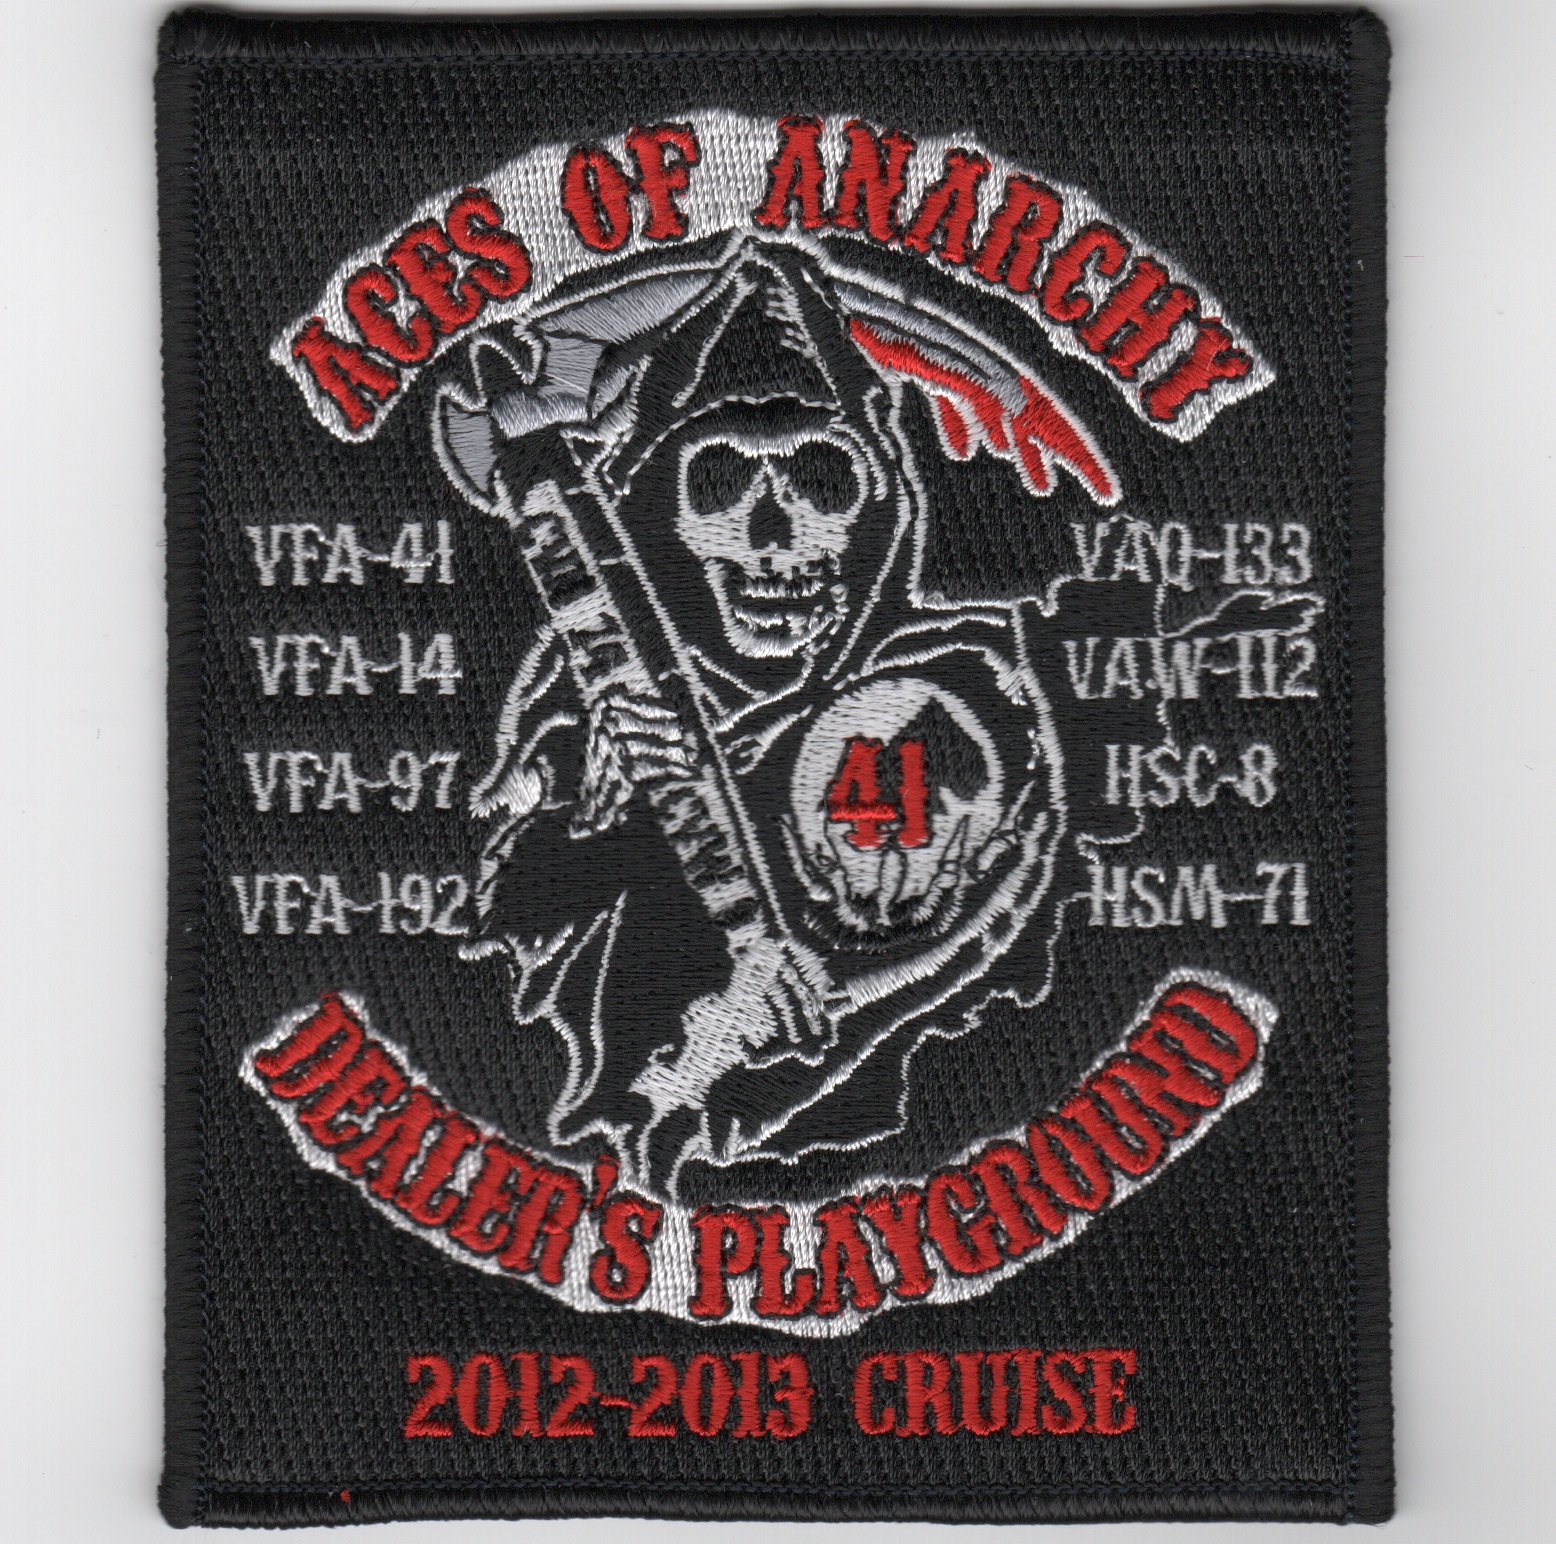 CVN-74 2013 'Aces of Anarchy' Cruise Patch (Square)